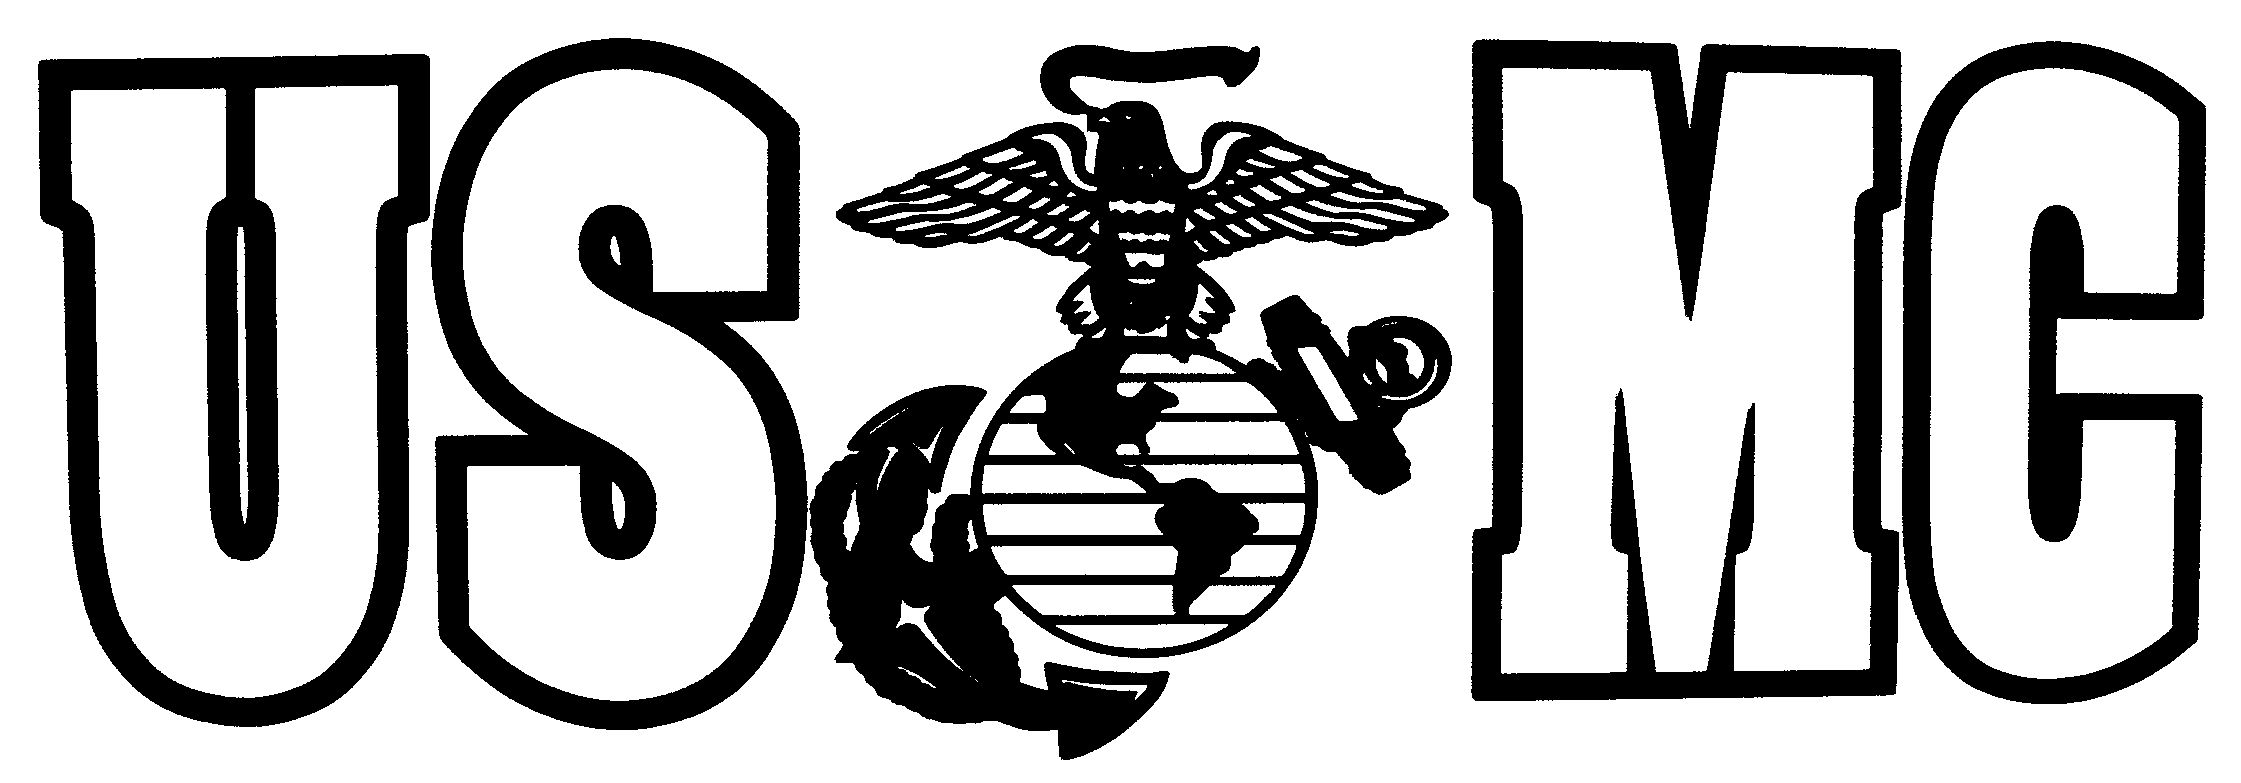 Marine Corps Usmc Eagle Globe And Anchor Decal